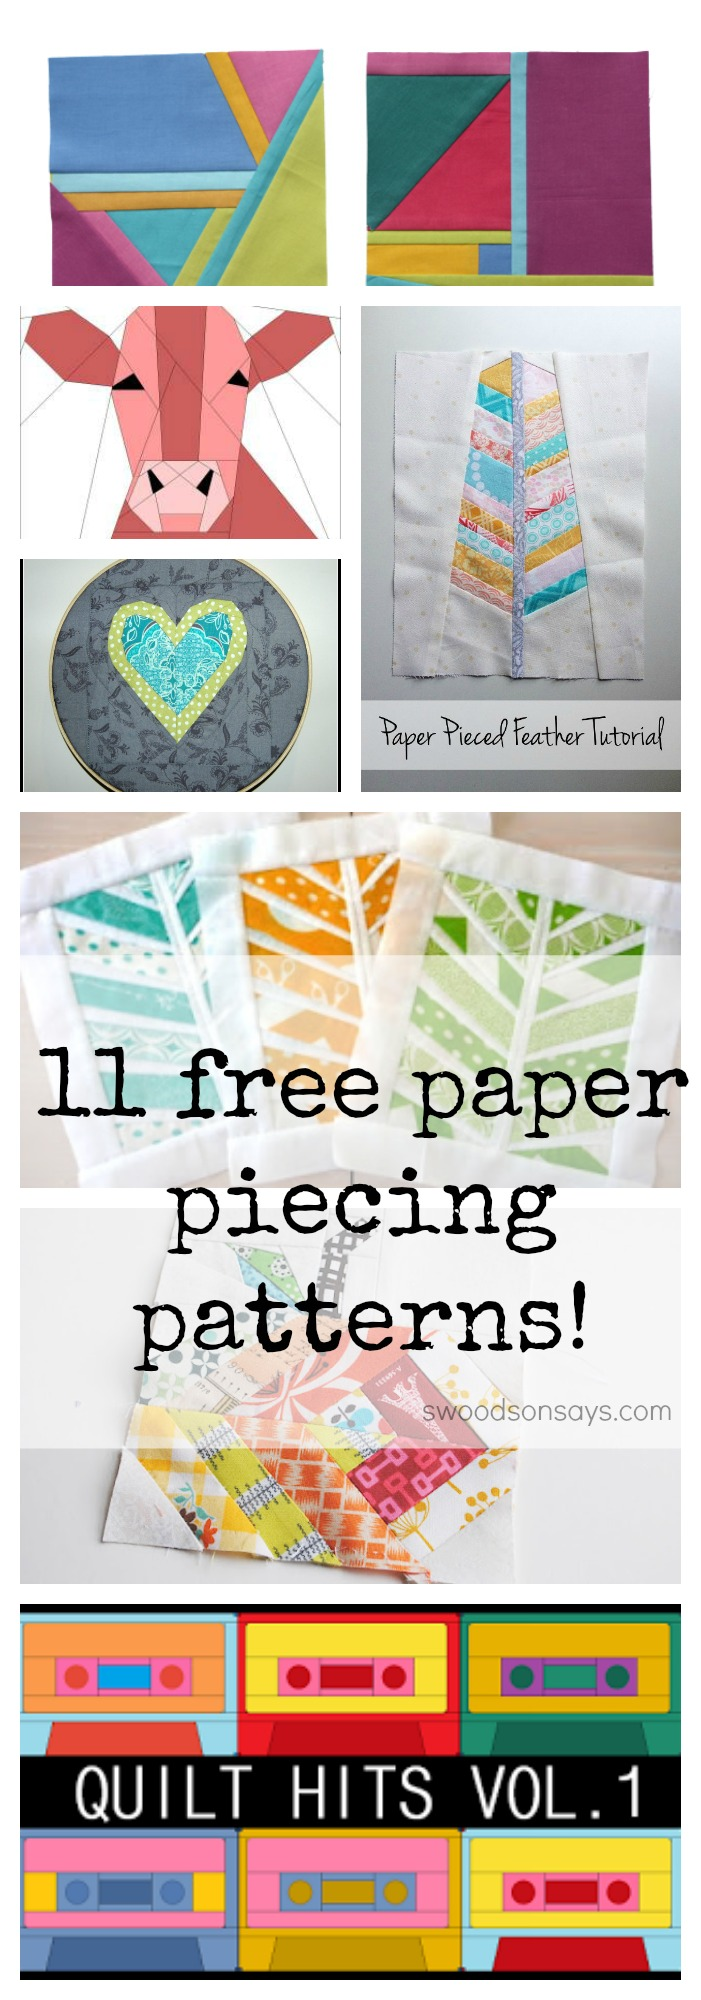 Free paper piecing patterns for foundation paper piecing